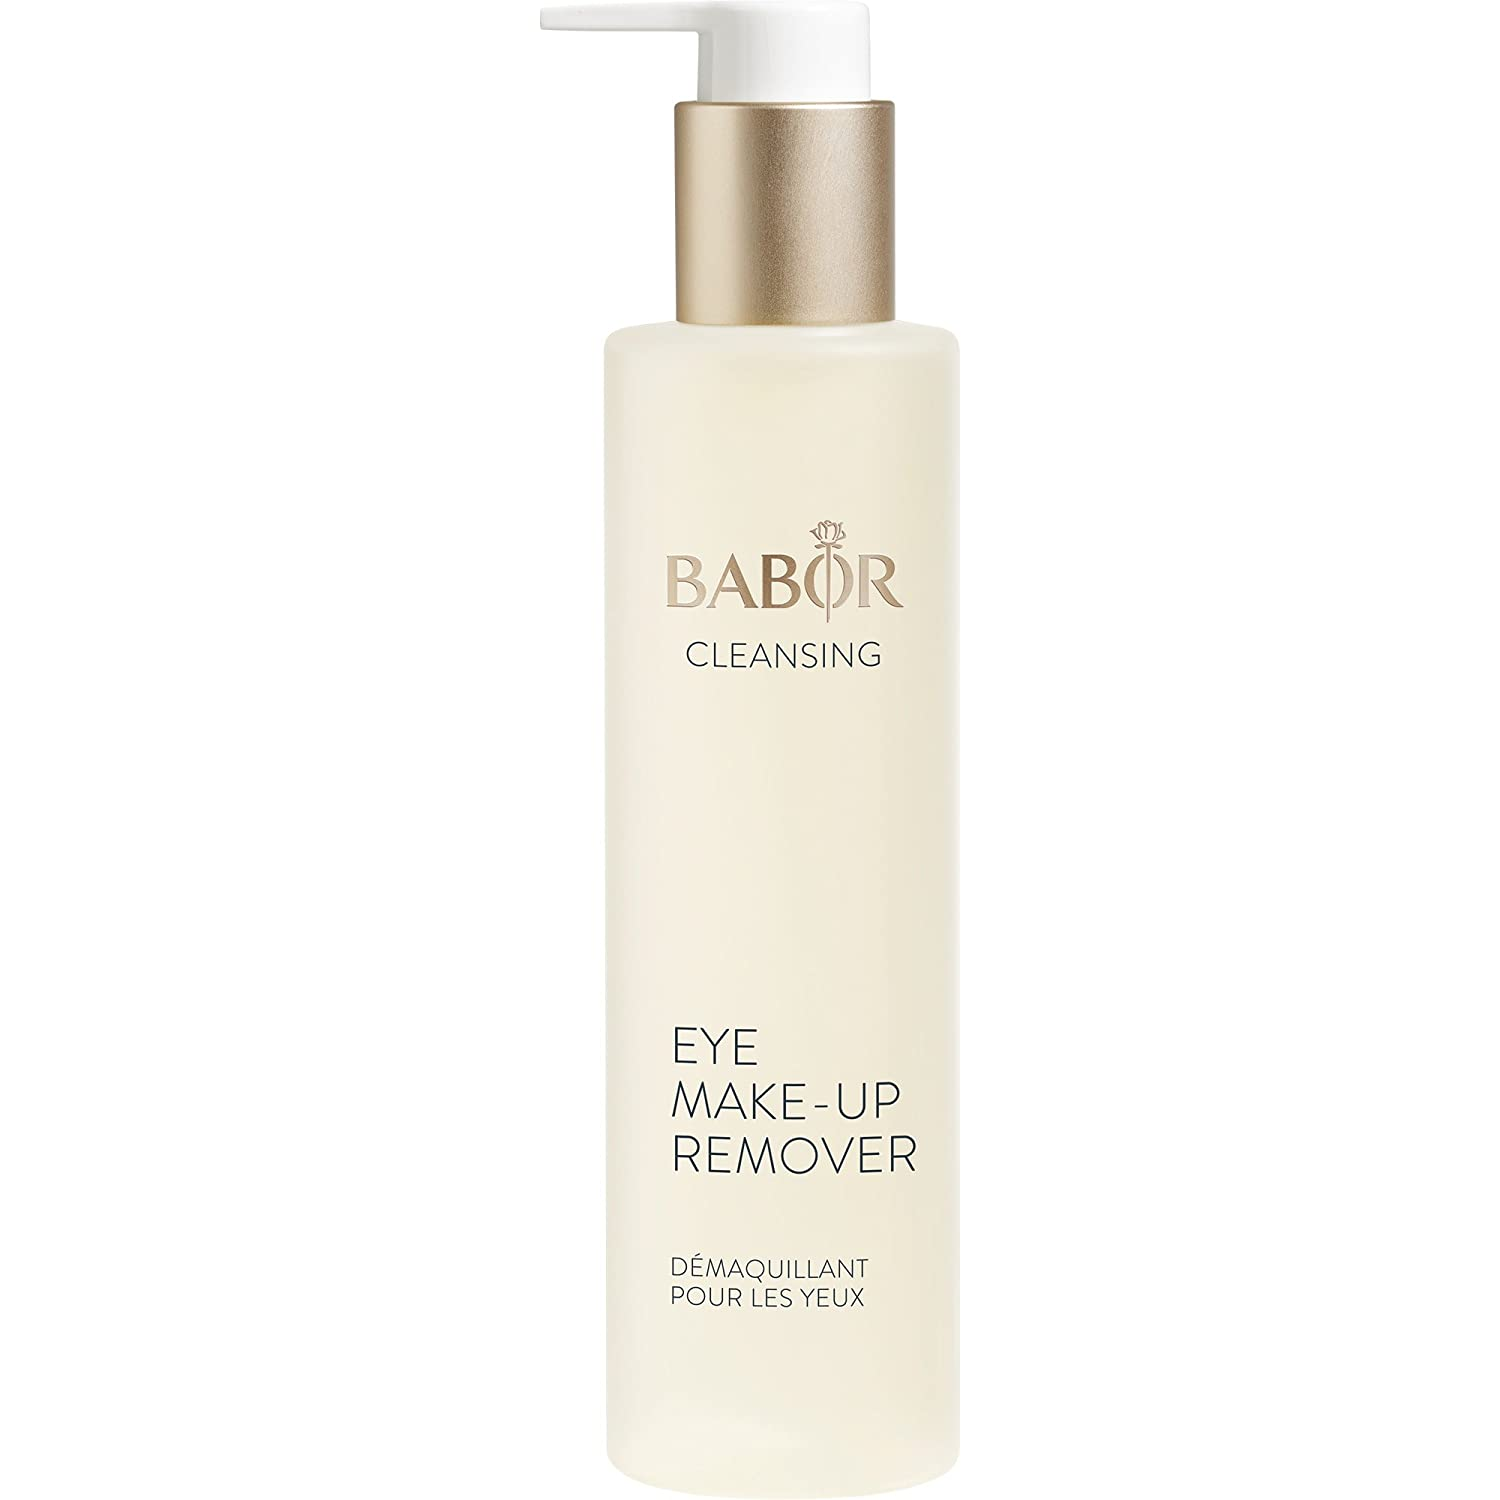 BABOR CLEANSING Eye Make-up Remover, 100 ml 411916